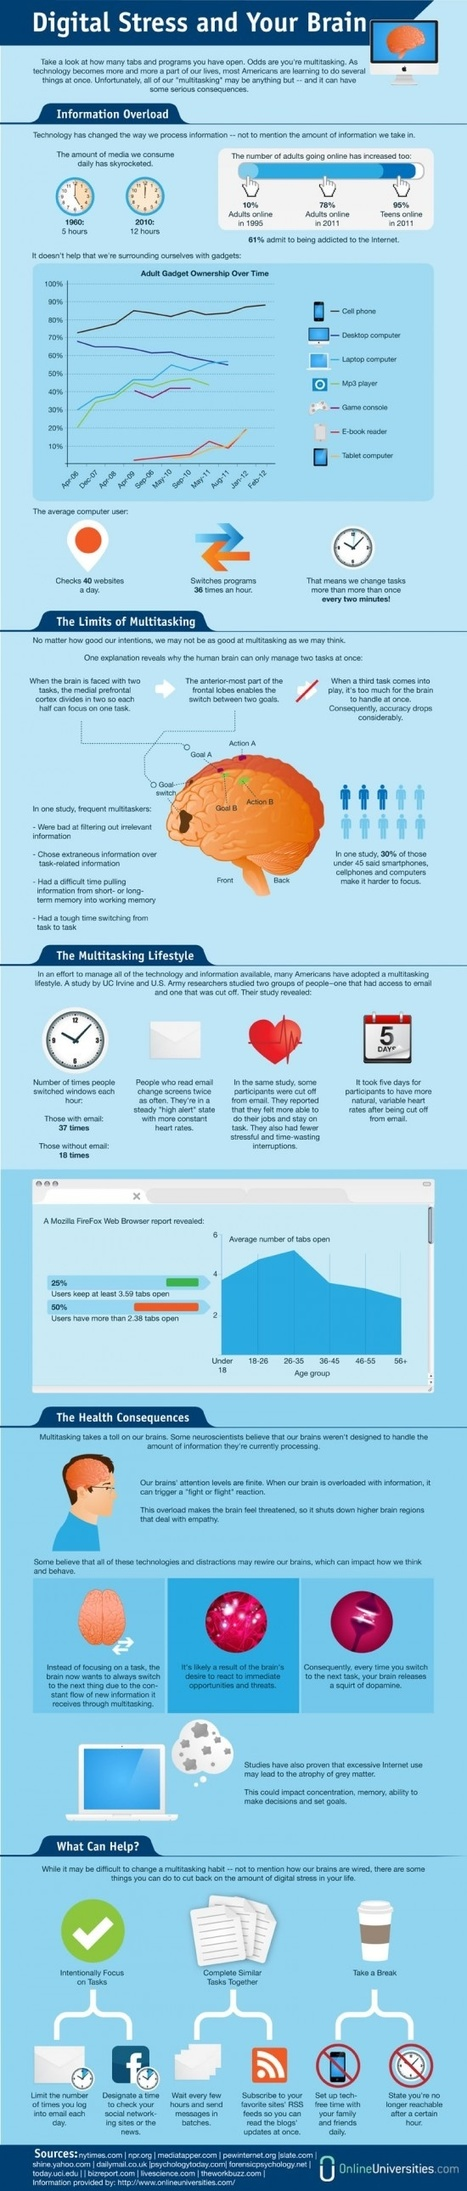 Digital Stress and your Brain:  Infographic | E-Learning and Online Teaching | Scoop.it